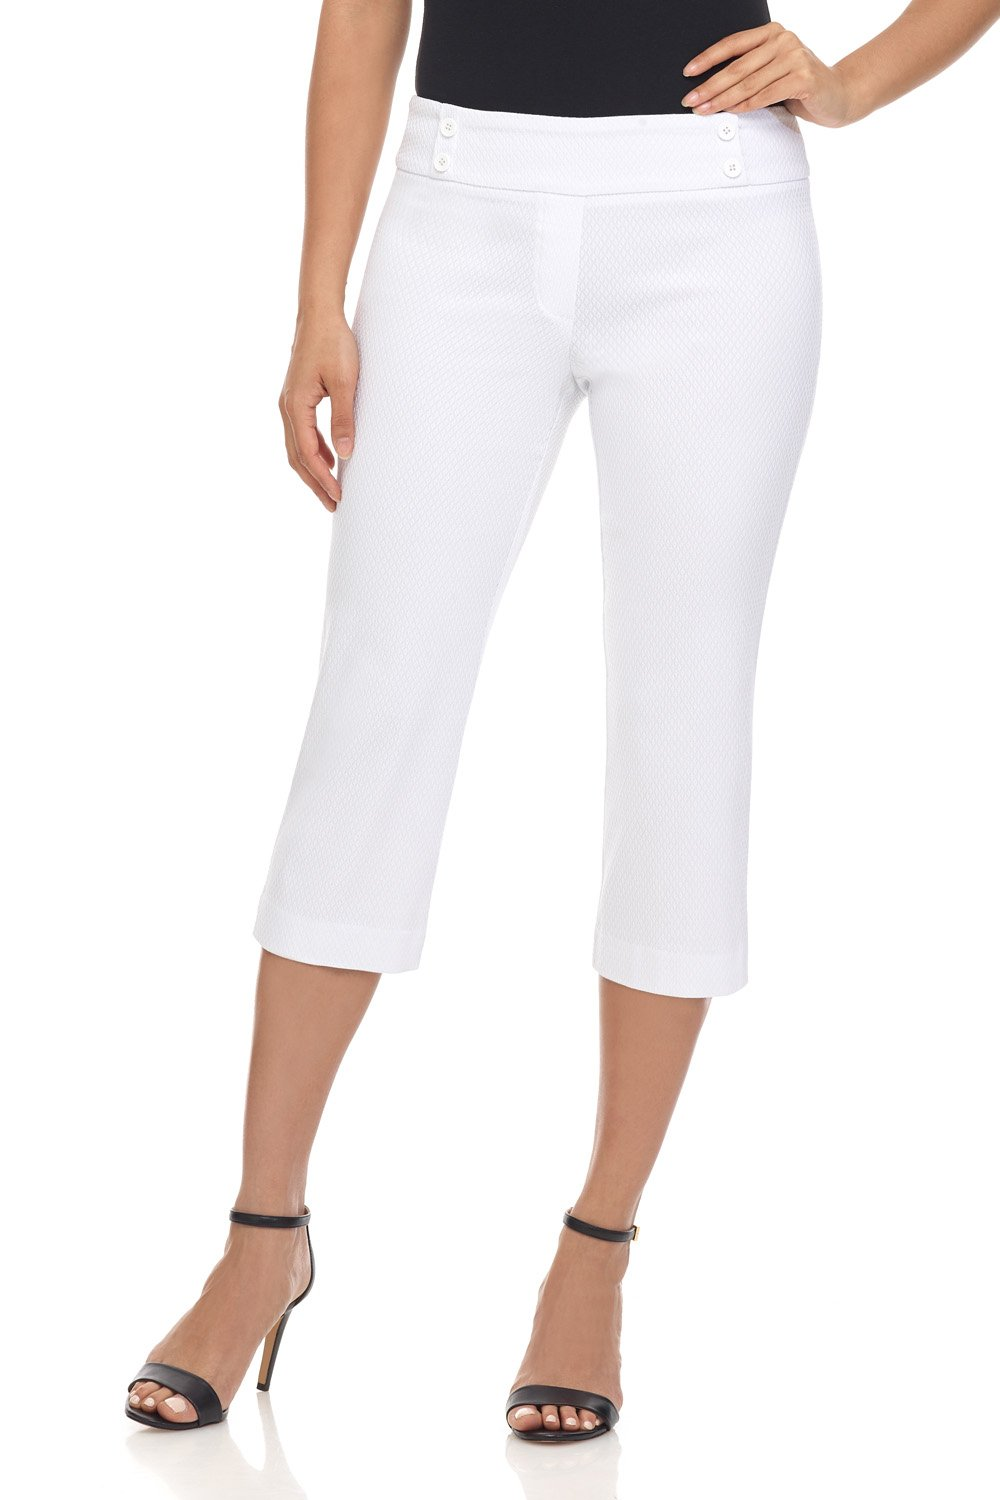 Rekucci Women's Ease in to Comfort Fit Capri with Button Detail (6,White Diamond Texture)